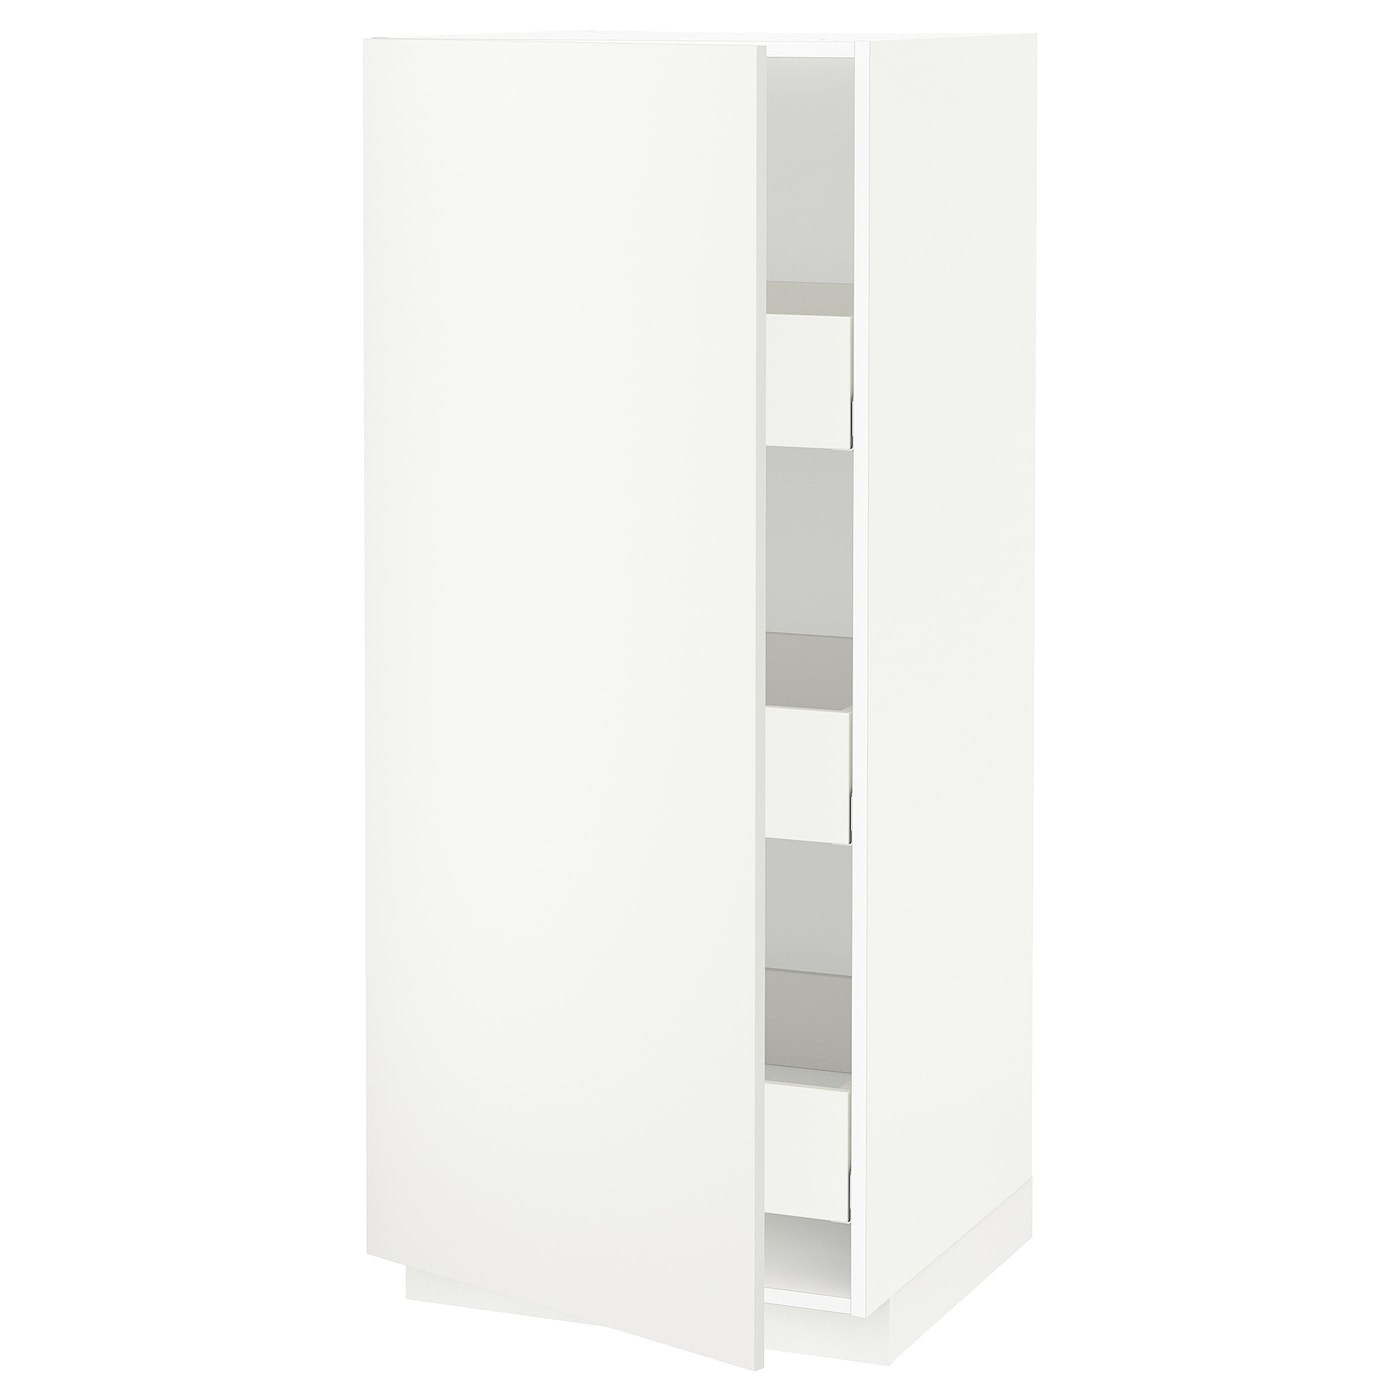 metod maximera l ment armoire avec tiroirs blanc h ggeby blanc 60x60x140 cm ikea. Black Bedroom Furniture Sets. Home Design Ideas